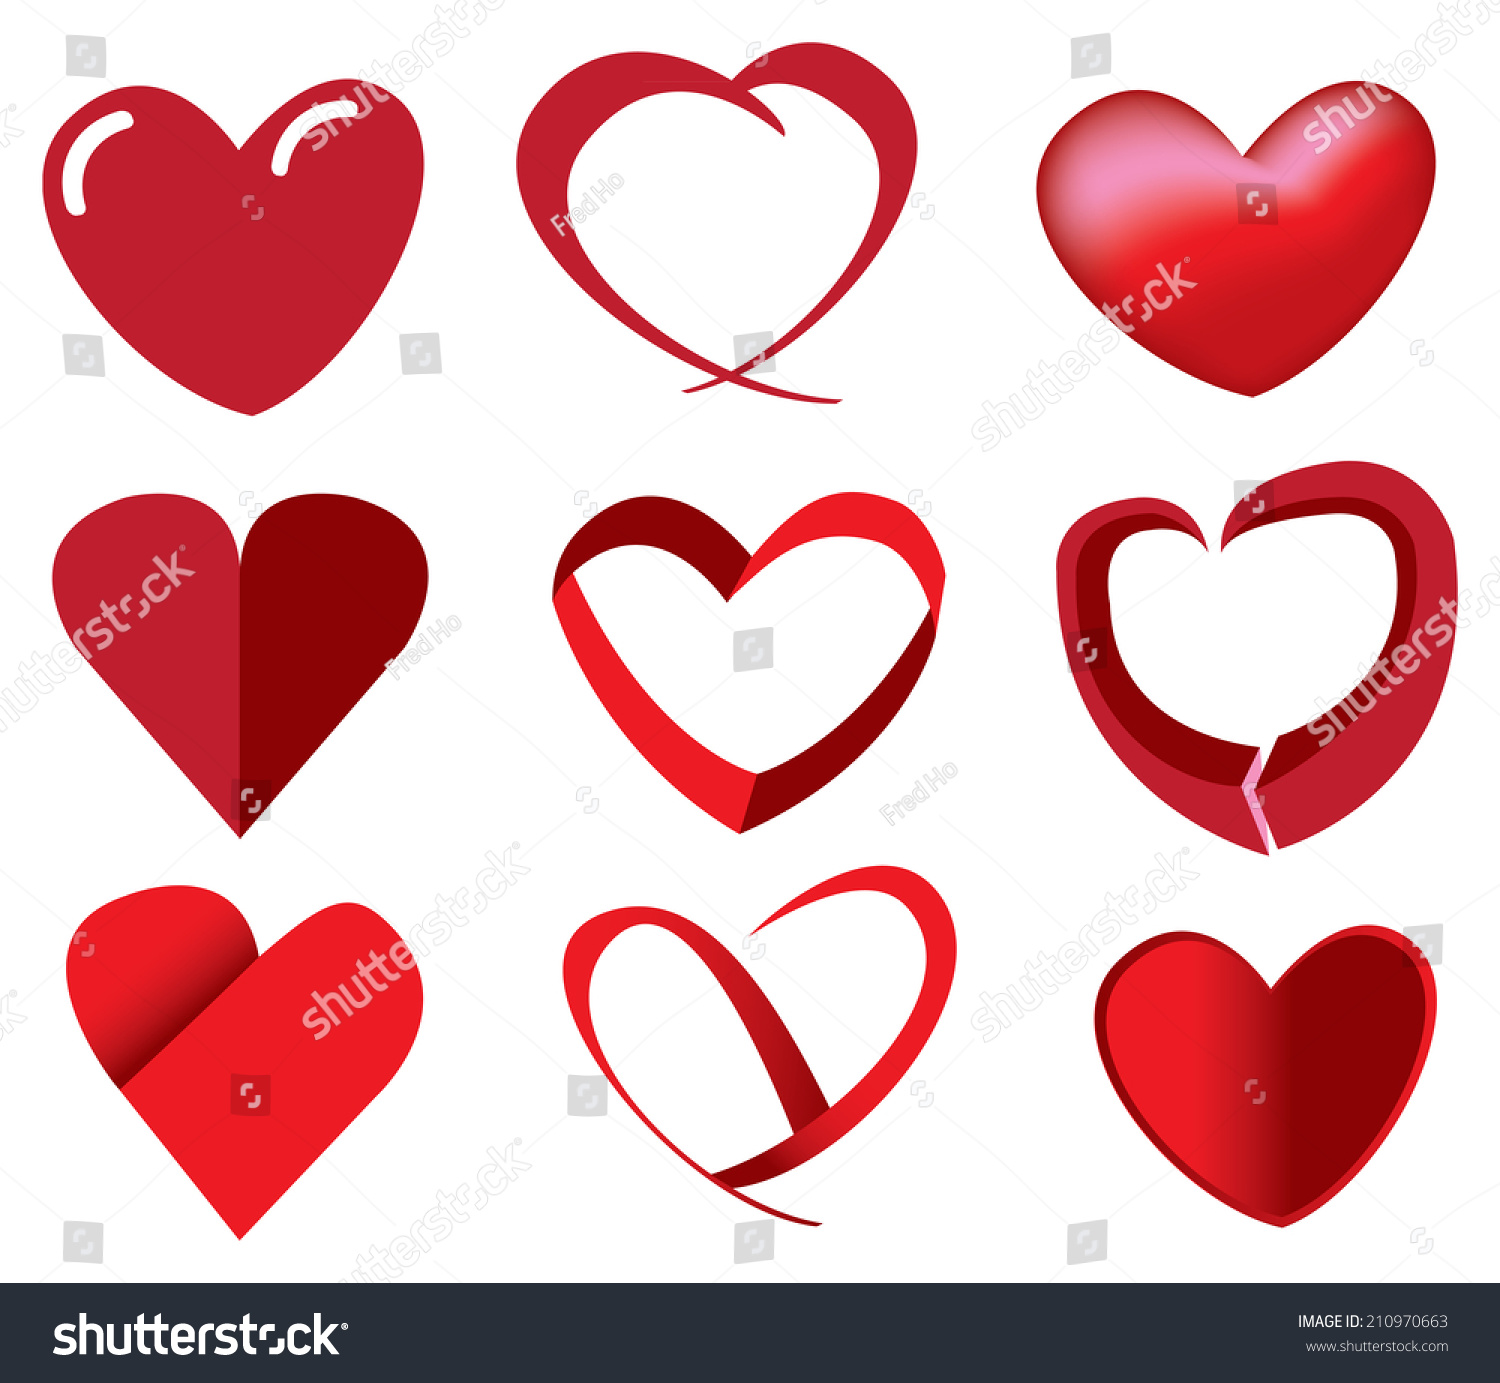 Vector illustration red heart shape different stock vector vector illustration of red heart shape in different fun designs buycottarizona